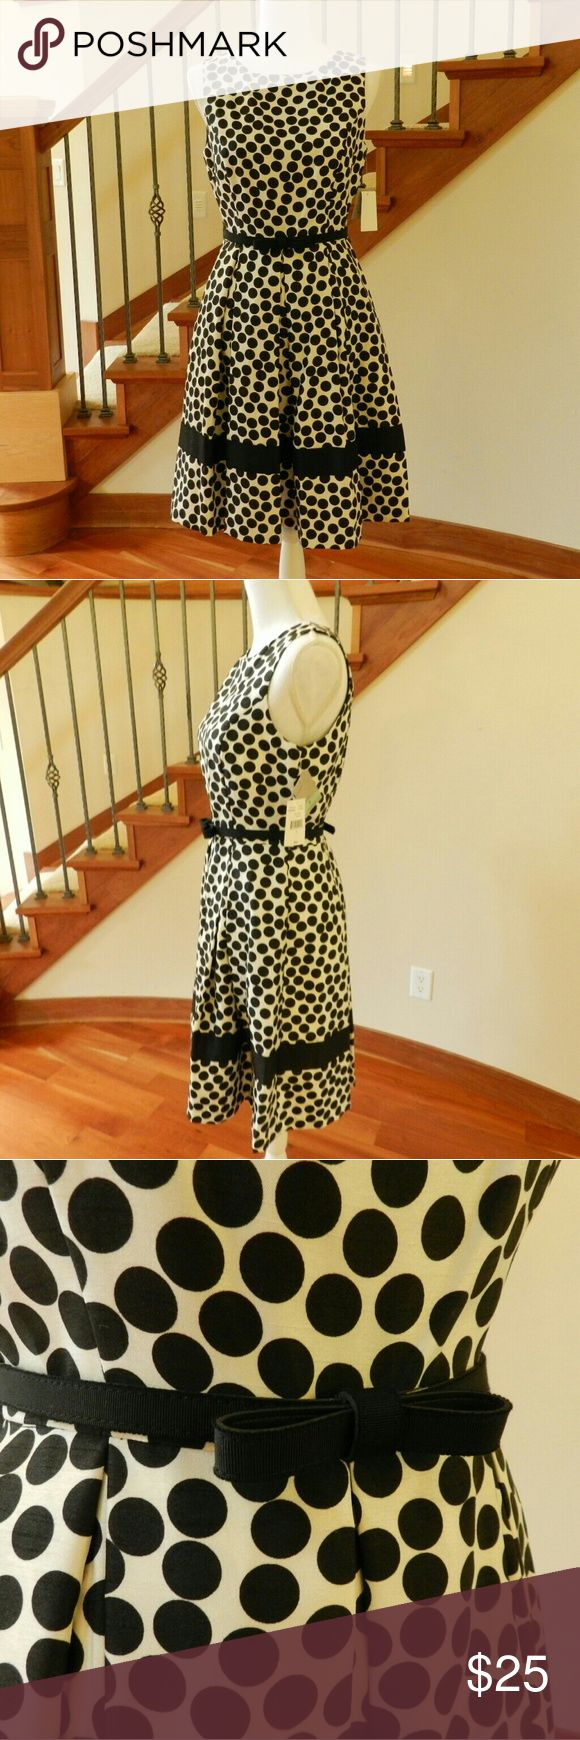 "Hepburn dot dress Audrey Hepburn style dress! ?Ivory polyester printed with black dots, and cinched with an adjustable belt. ?New with tags. ?Size 8. ?14.5""W 18""B 38""L Danny and Nicole Dresses Midi"